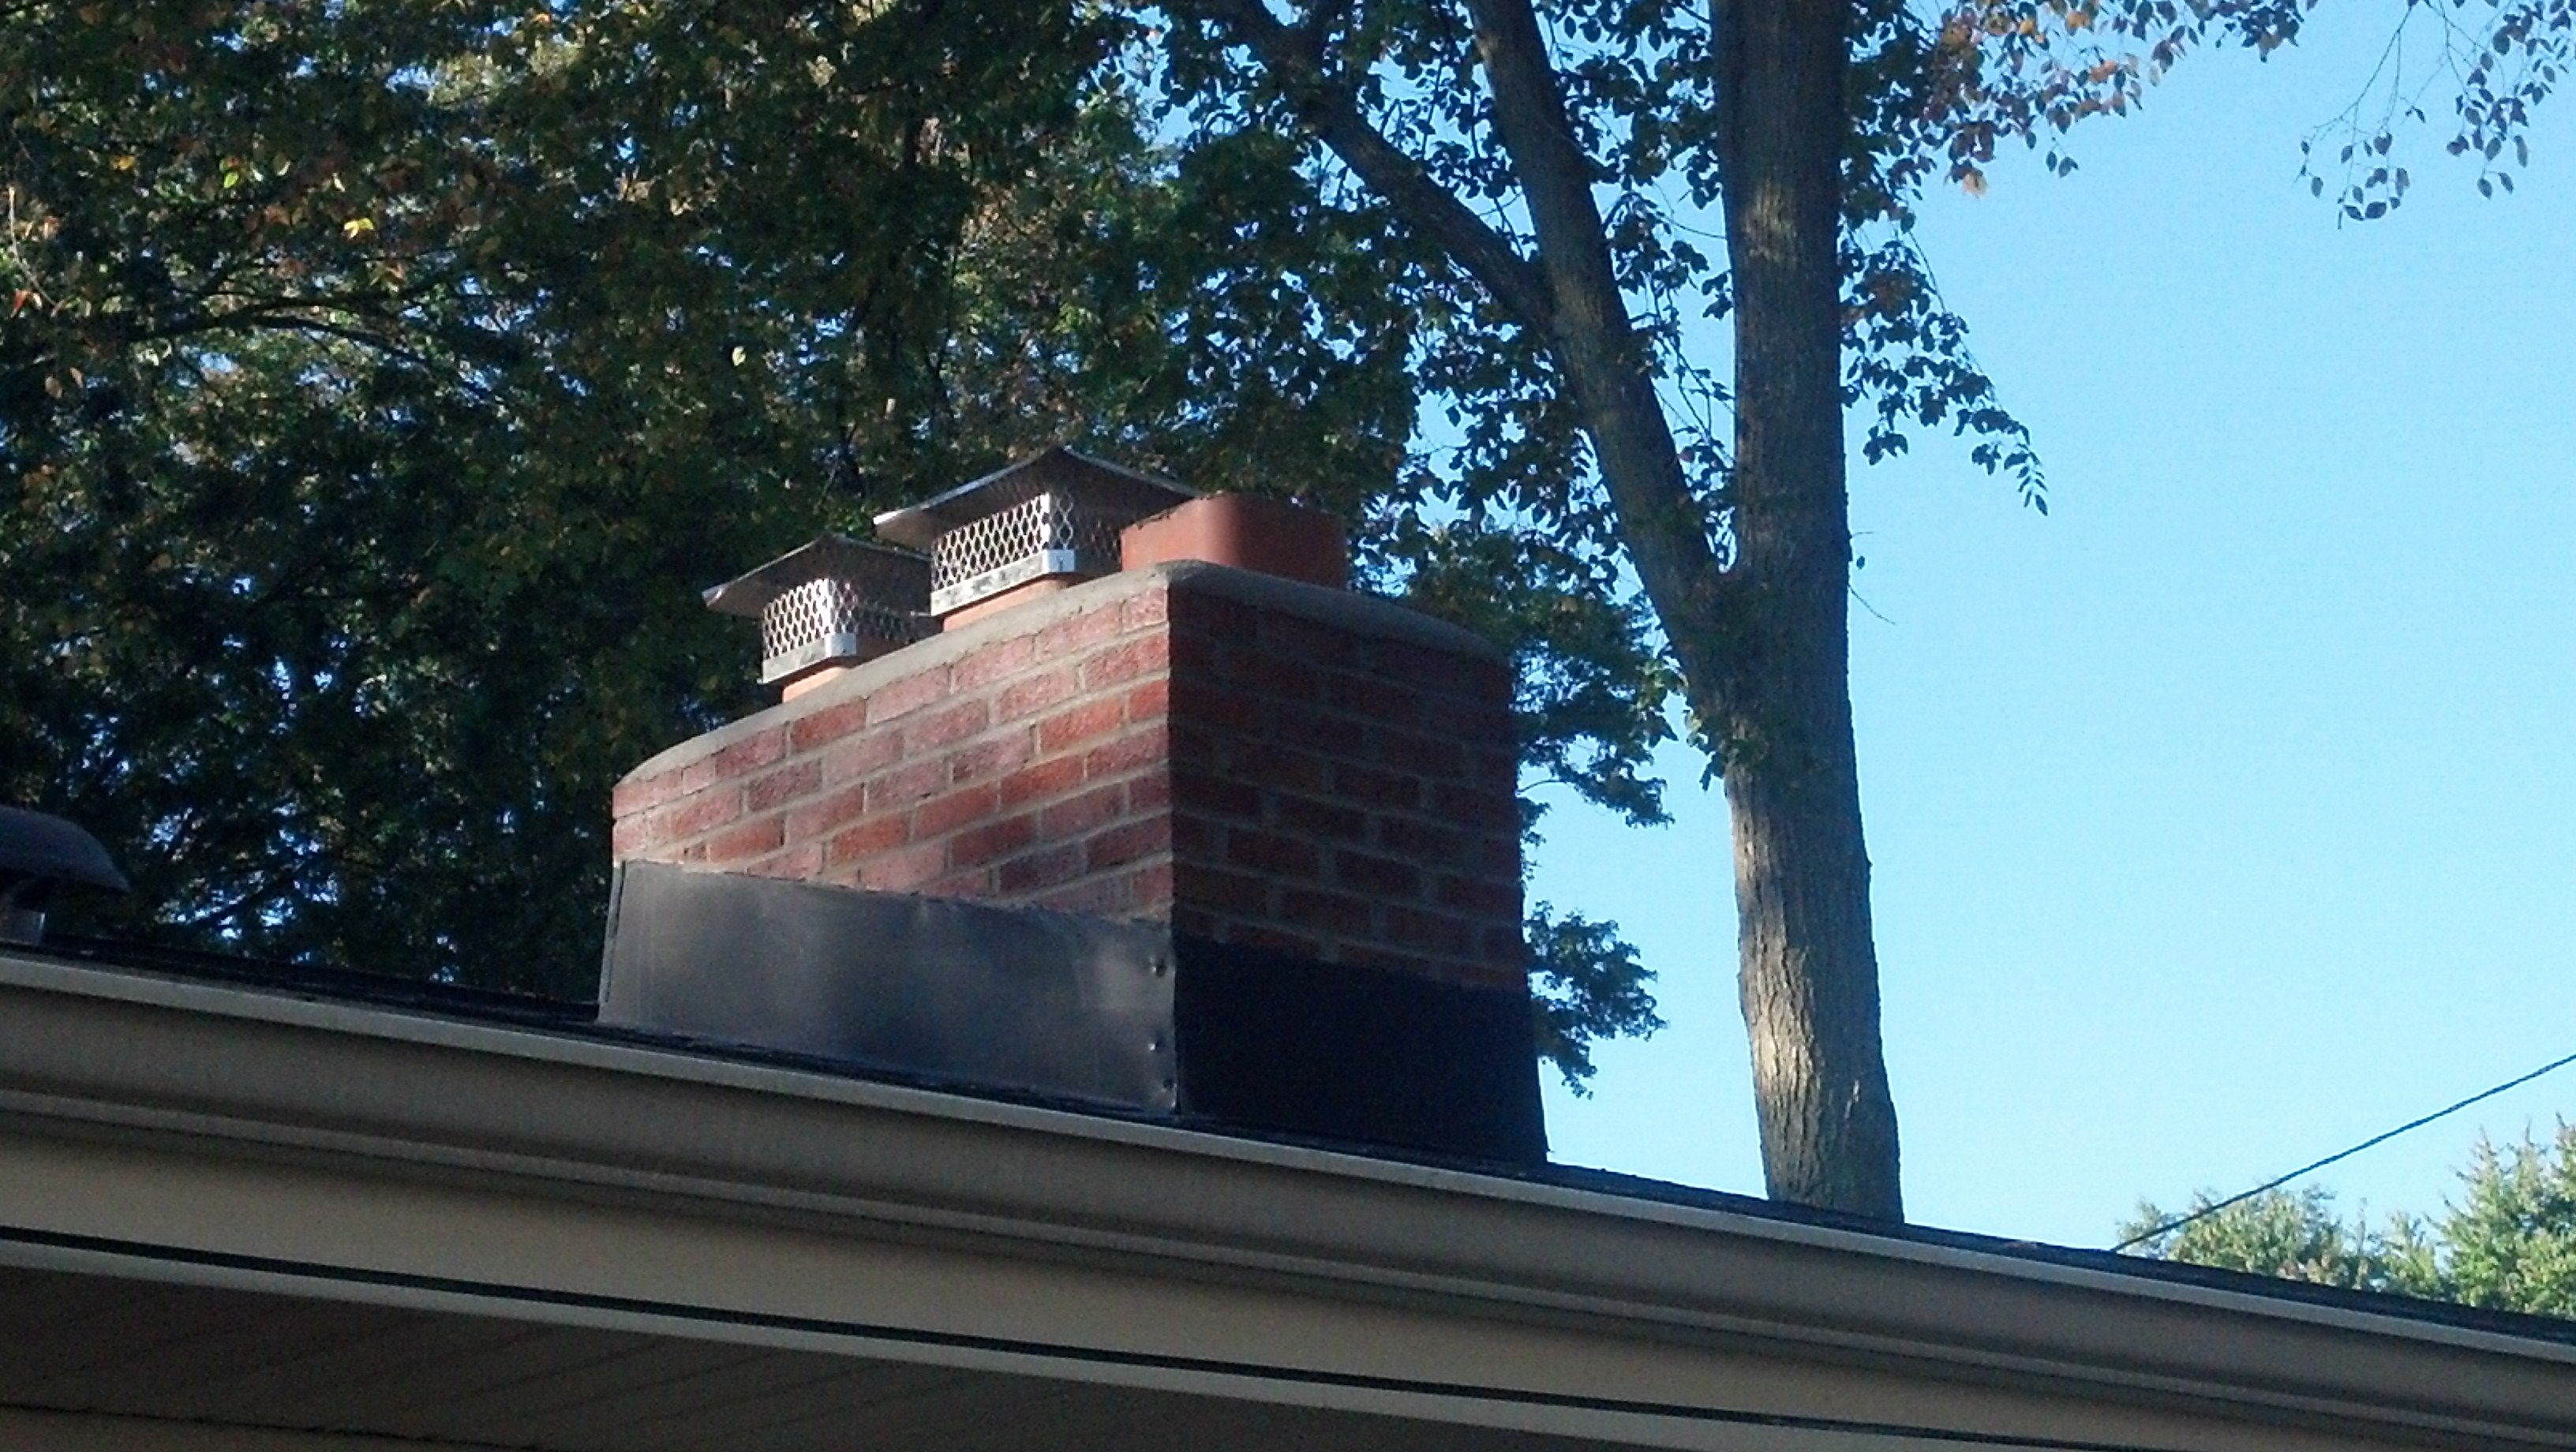 Ken S Chimney Sweep Amp Repair Your Safety Is Our Mission